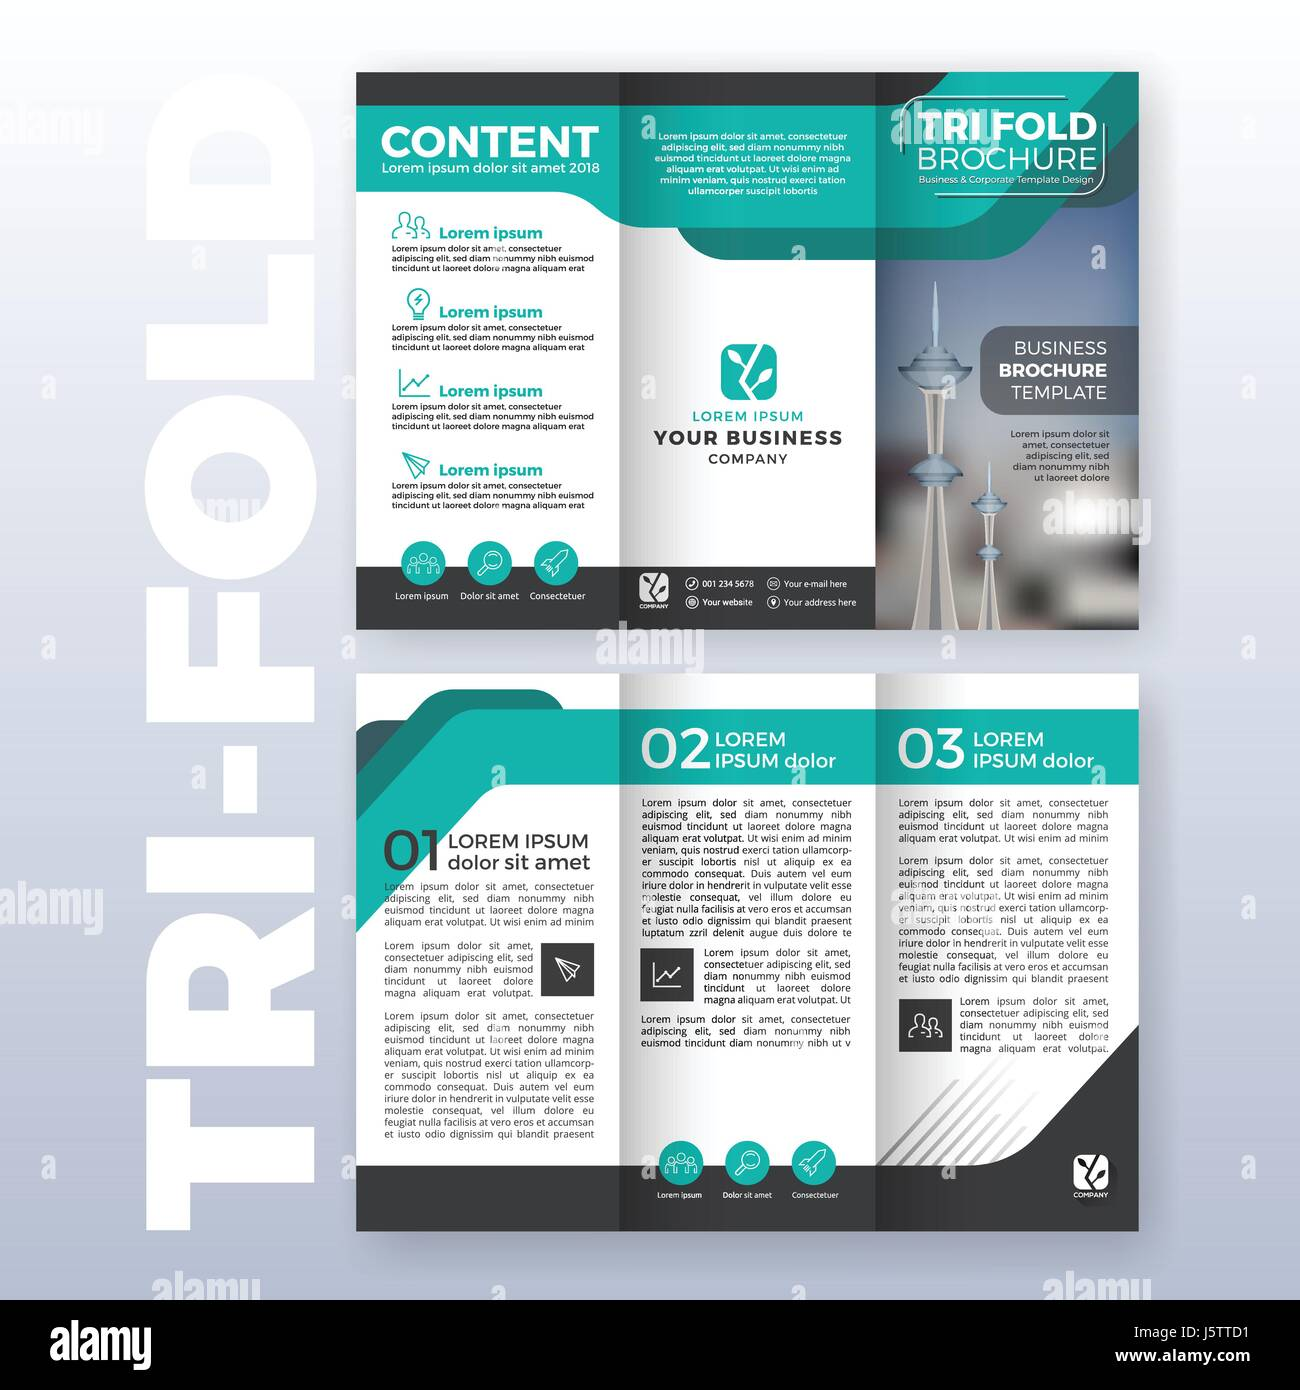 Business Trifold Brochure Template Design With Turquoise Color - Trifold brochure template